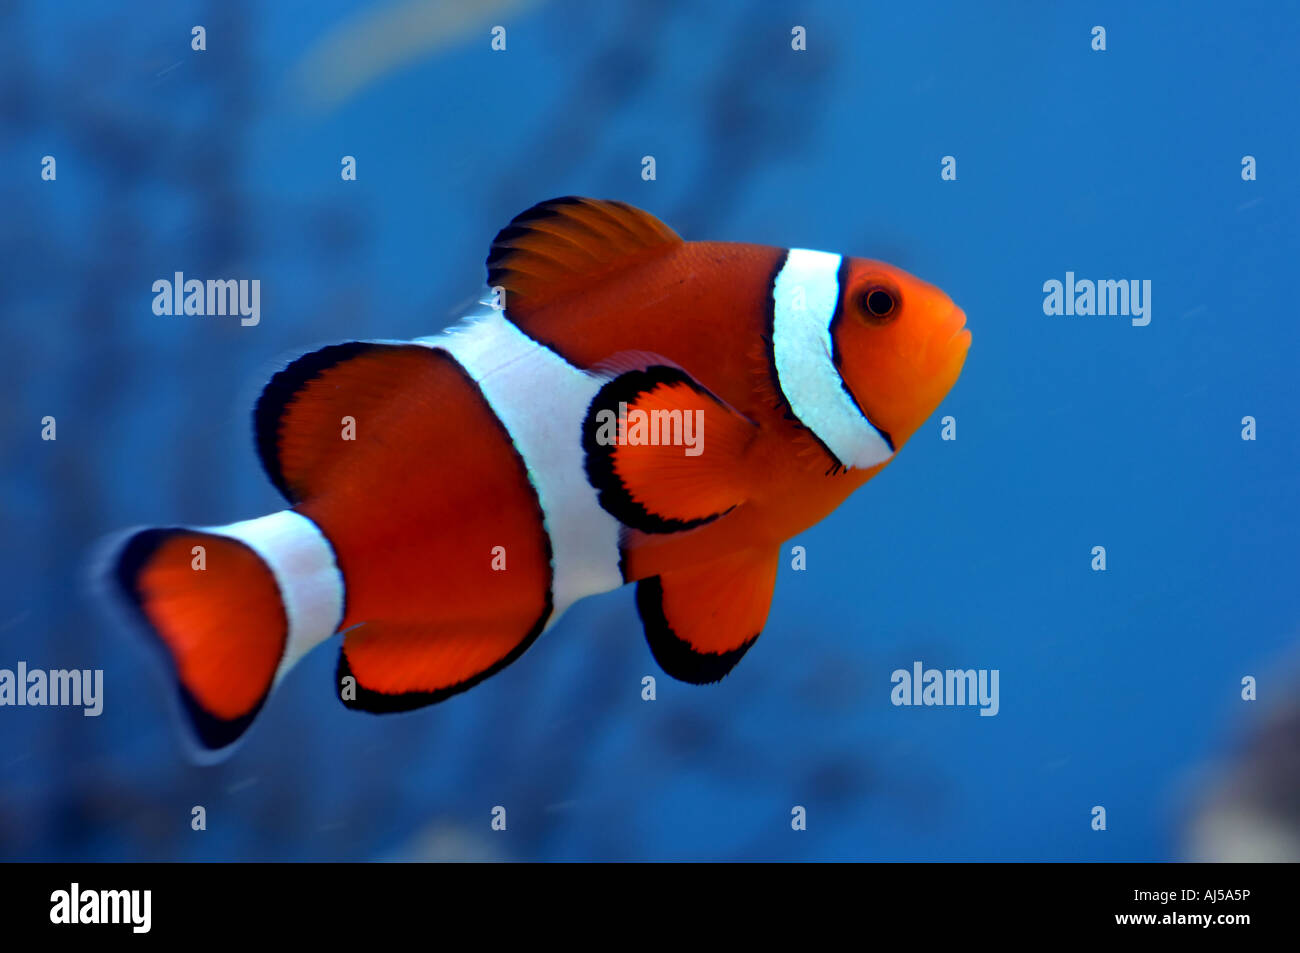 Finding Nemo Stock Photos & Finding Nemo Stock Images - Alamy